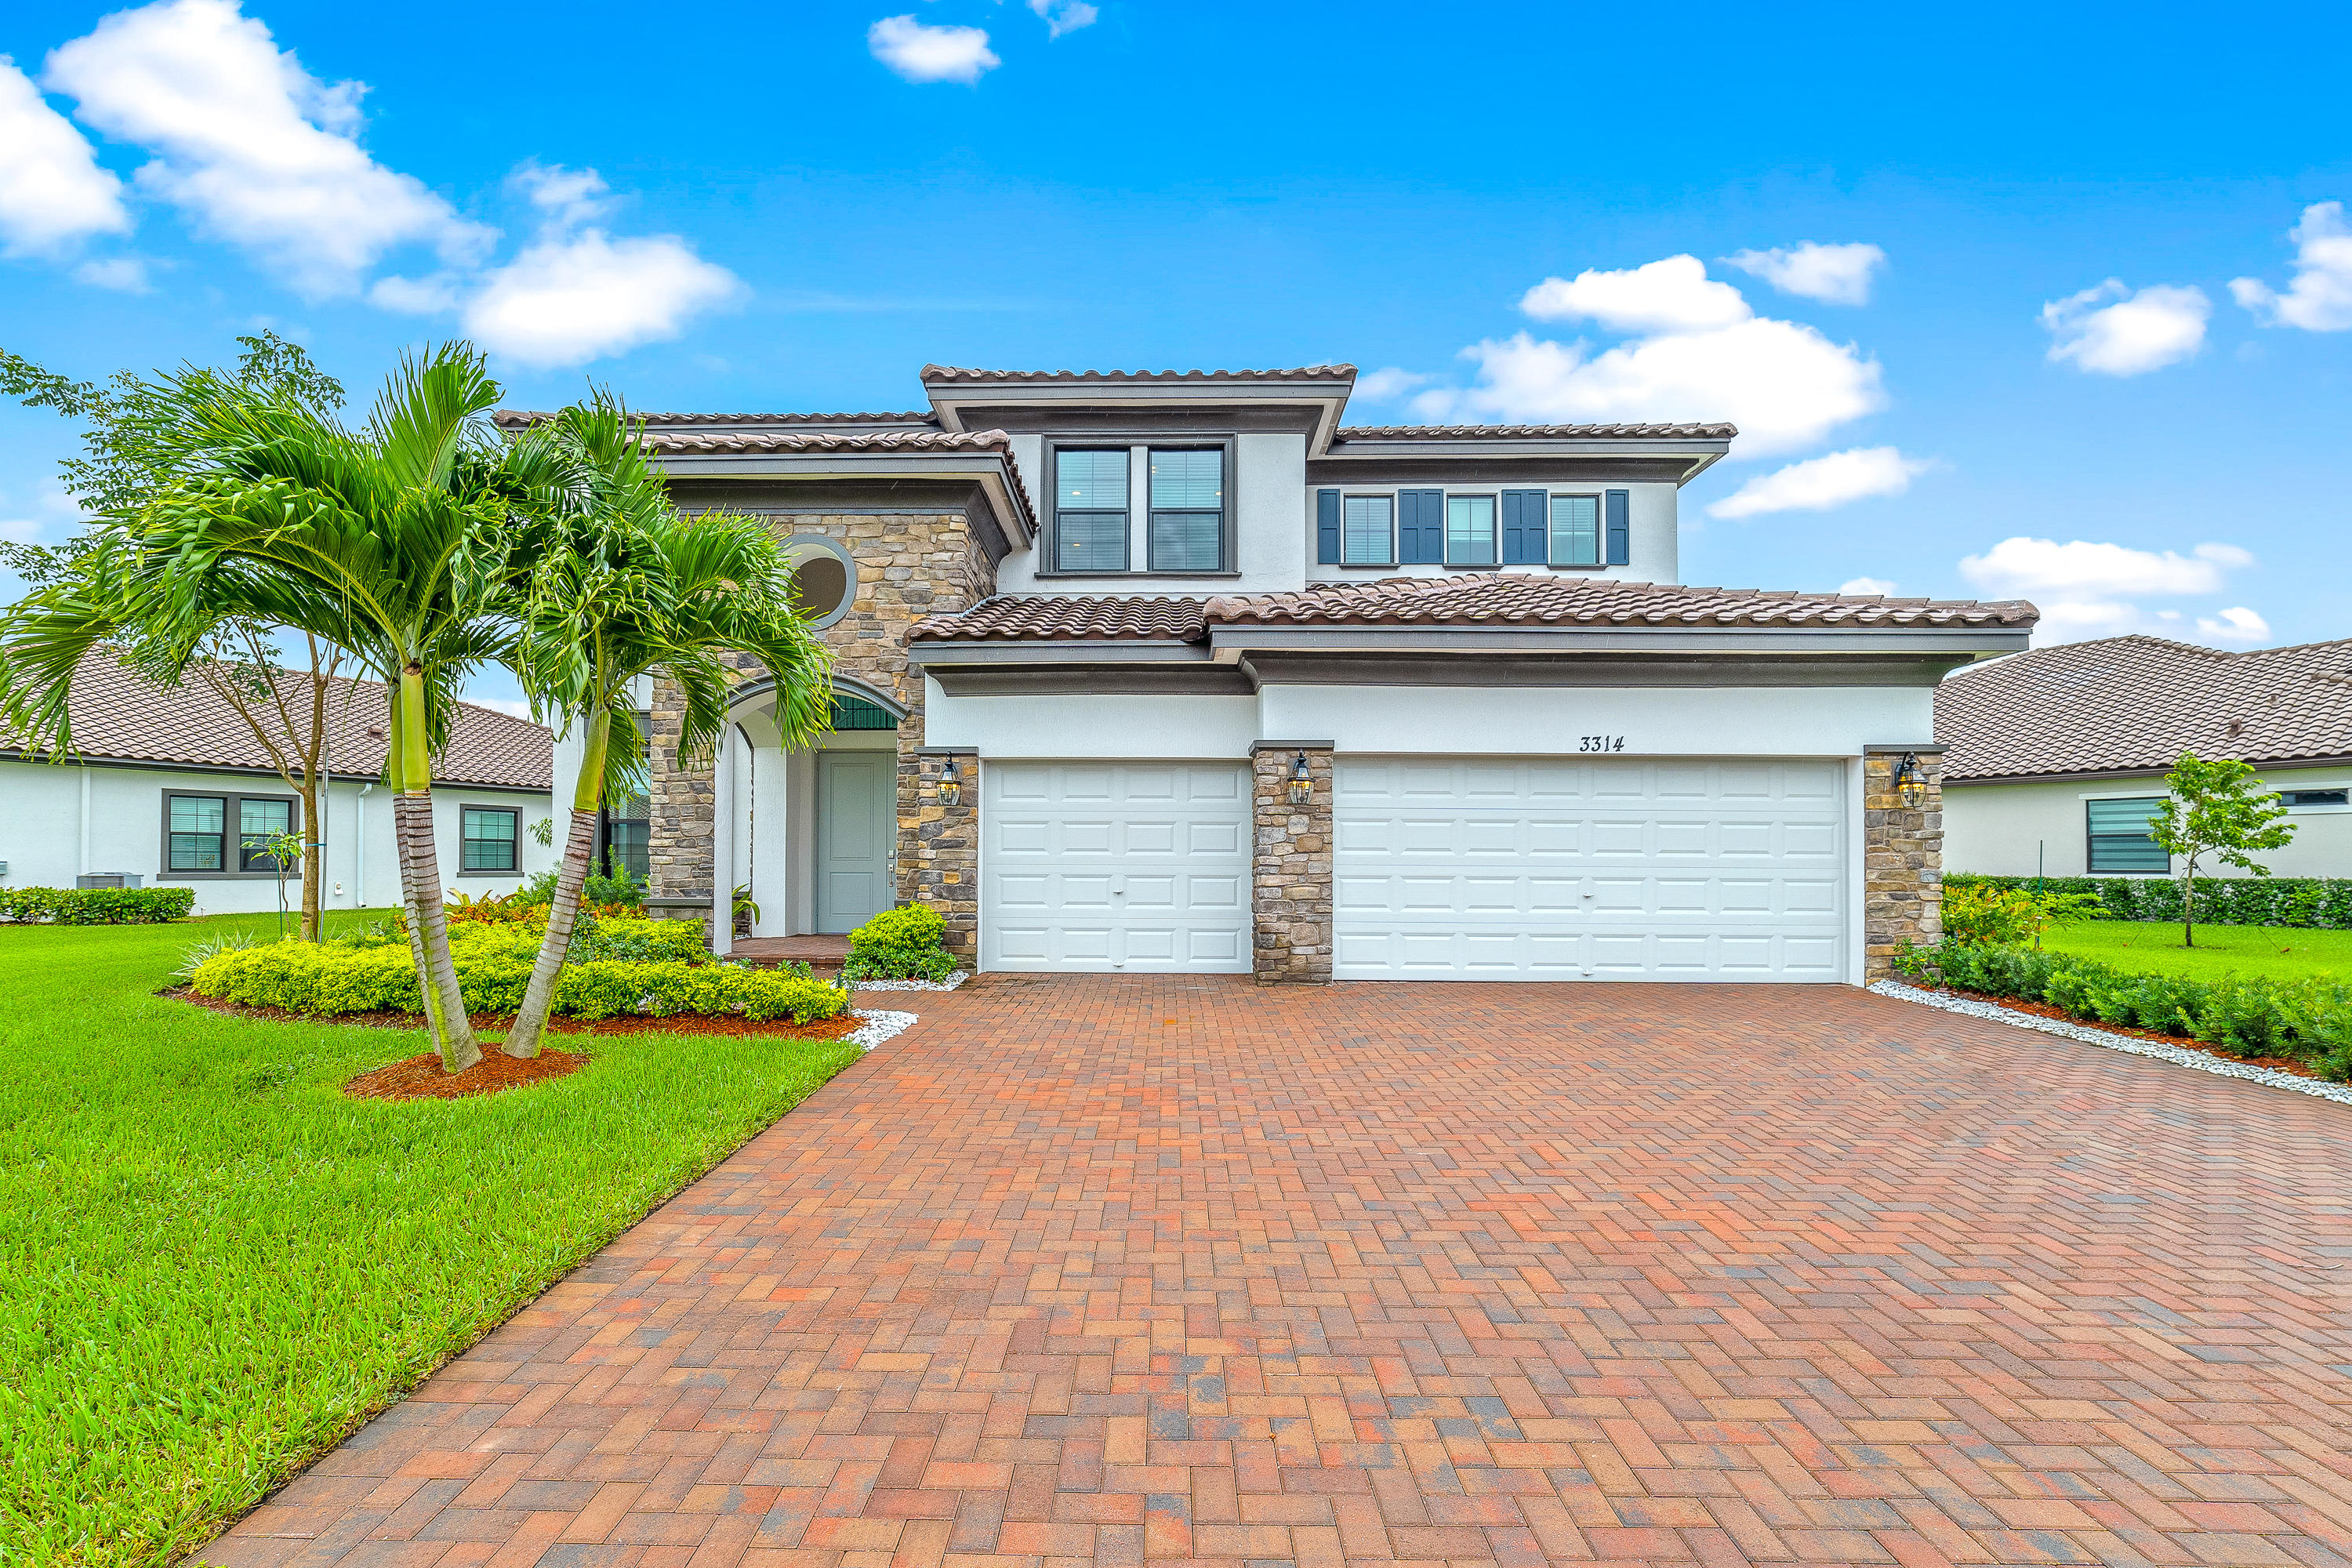 Home for sale in Bellasera Chrestwood North Royal Palm Beach Florida